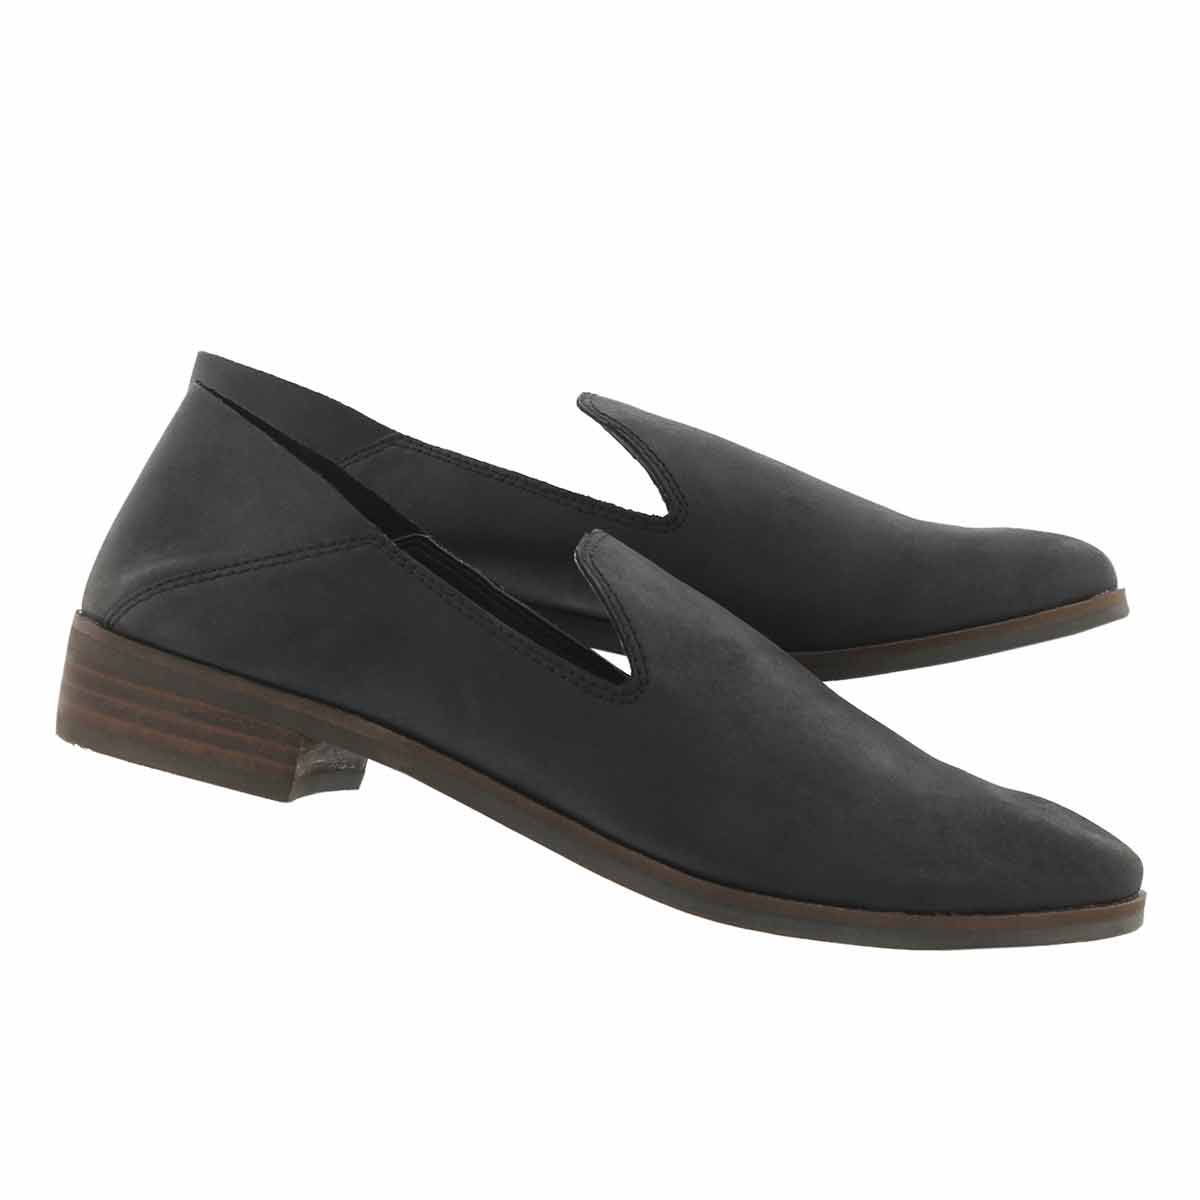 Lds Cahill black casual slip on shoe